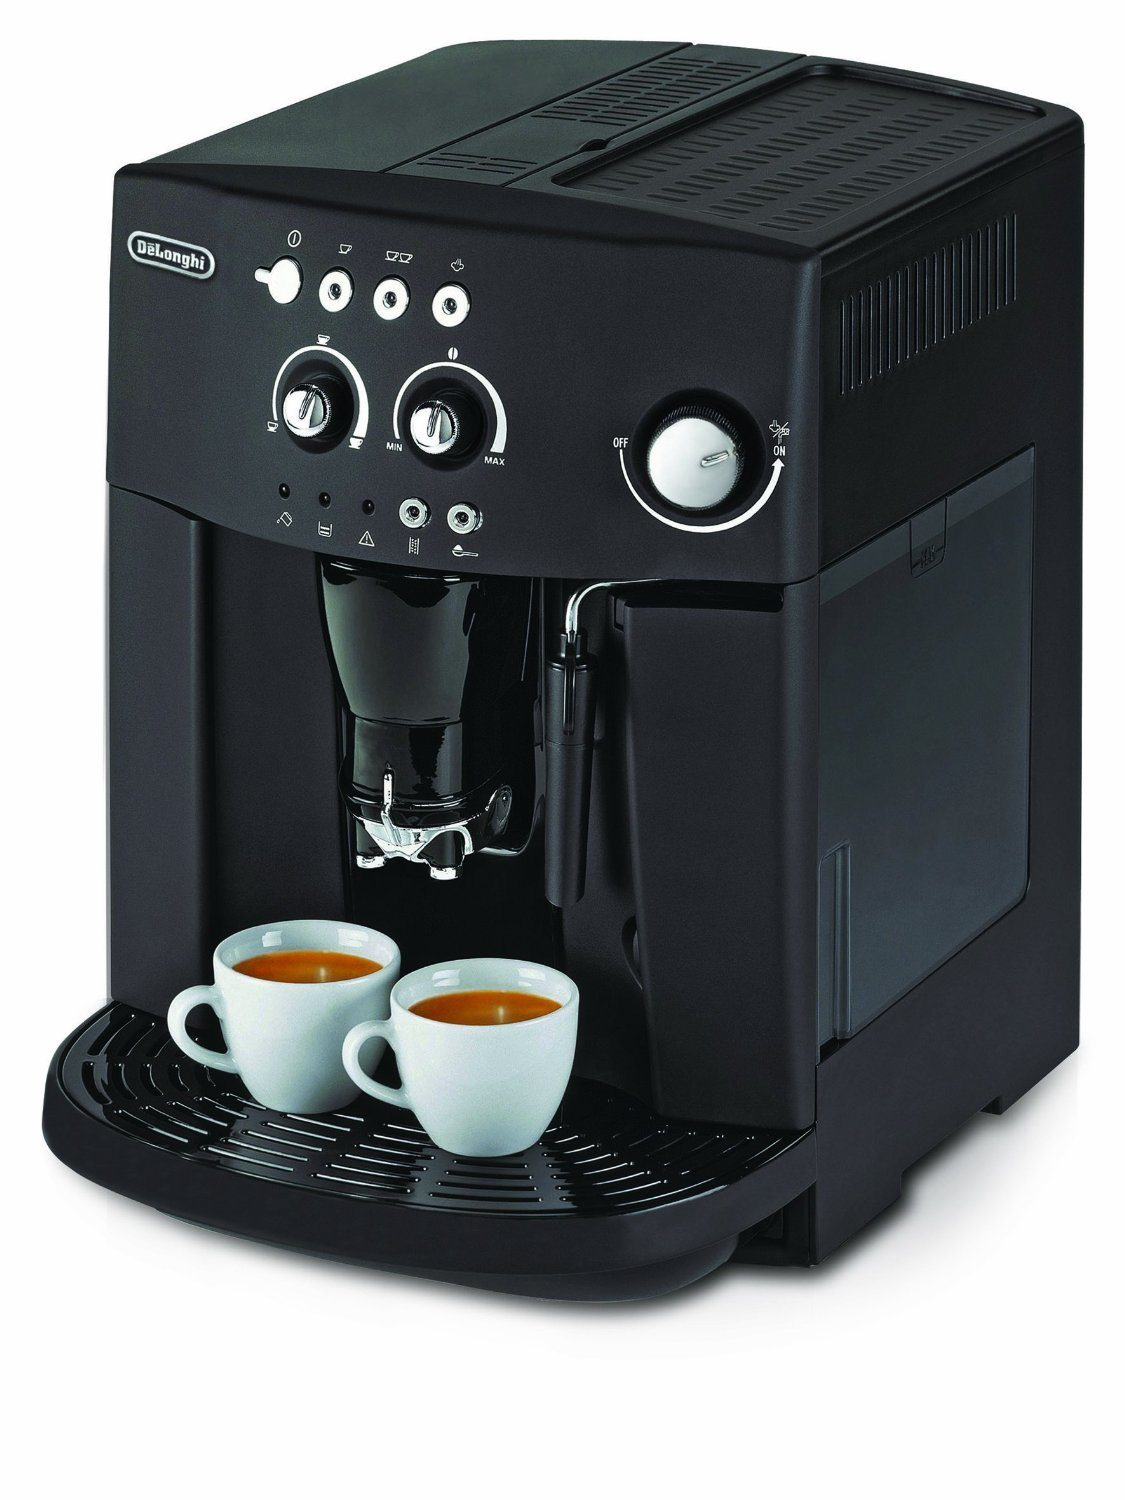 Machine a cafe a grain delonghi - Machine a cafe a grain delonghi ...